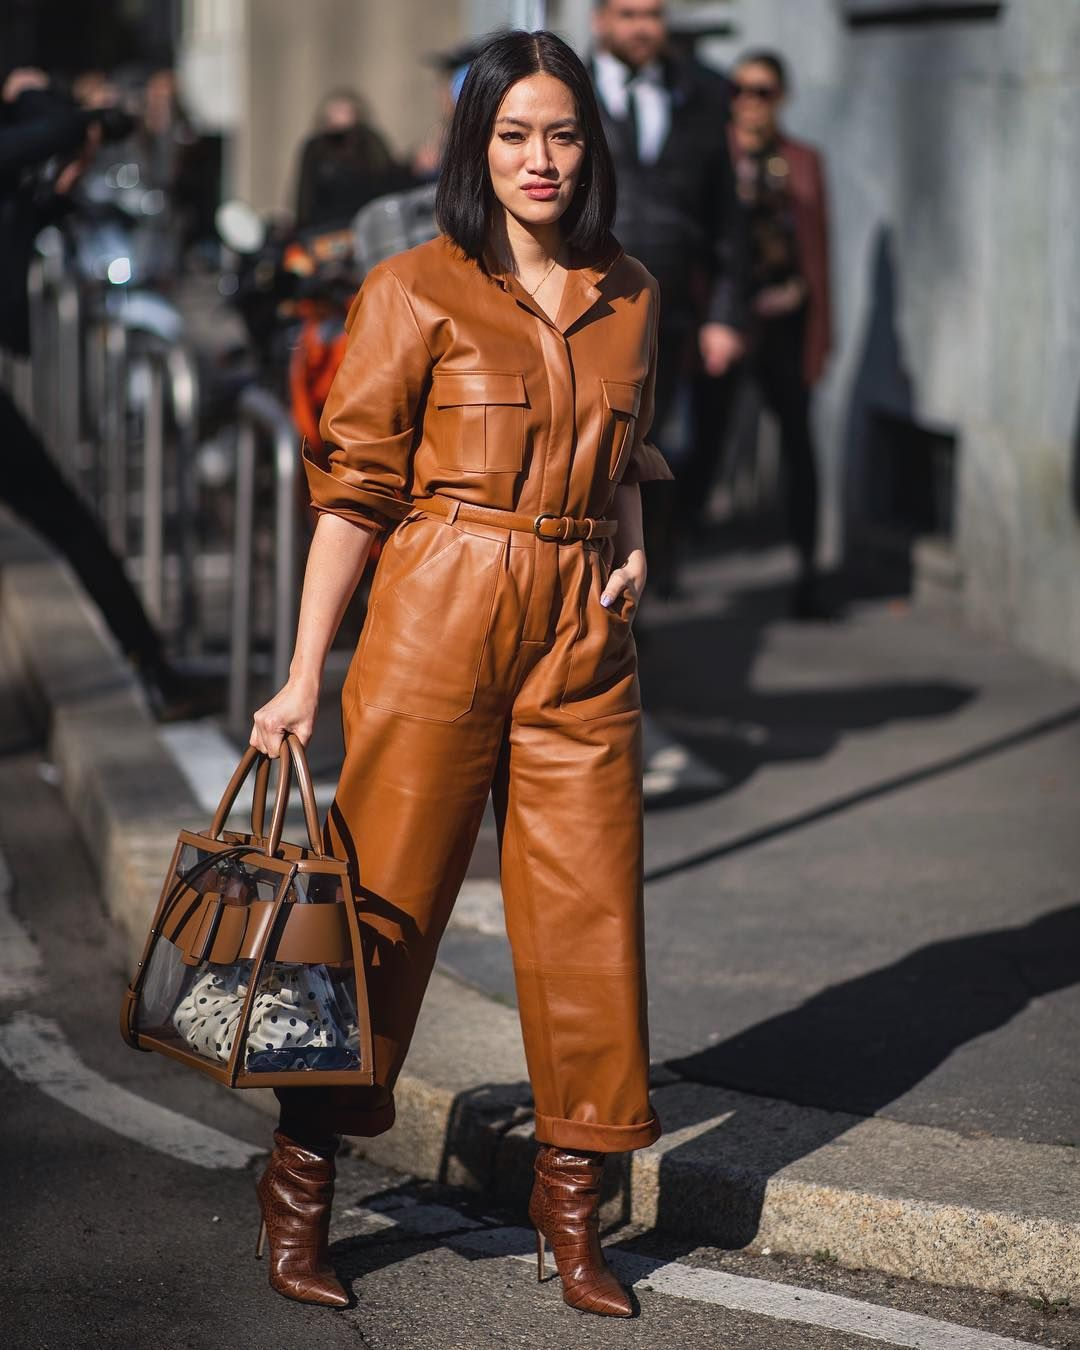 Leather boiler suit trends